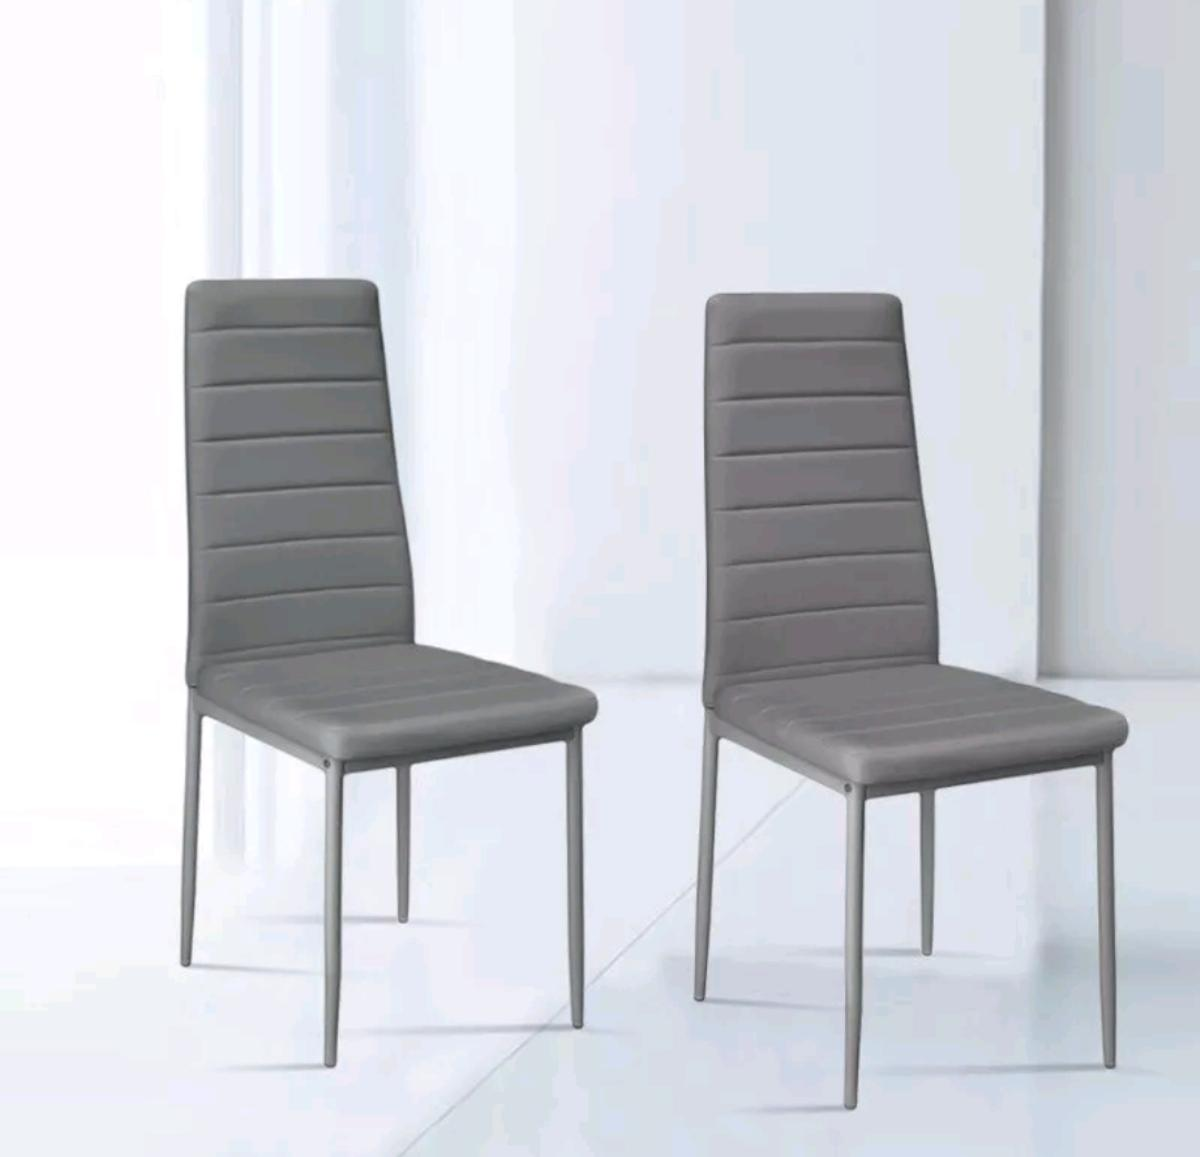 Phenomenal 6X Dining Chairs Dining Room Chairs Grey Taup Creativecarmelina Interior Chair Design Creativecarmelinacom